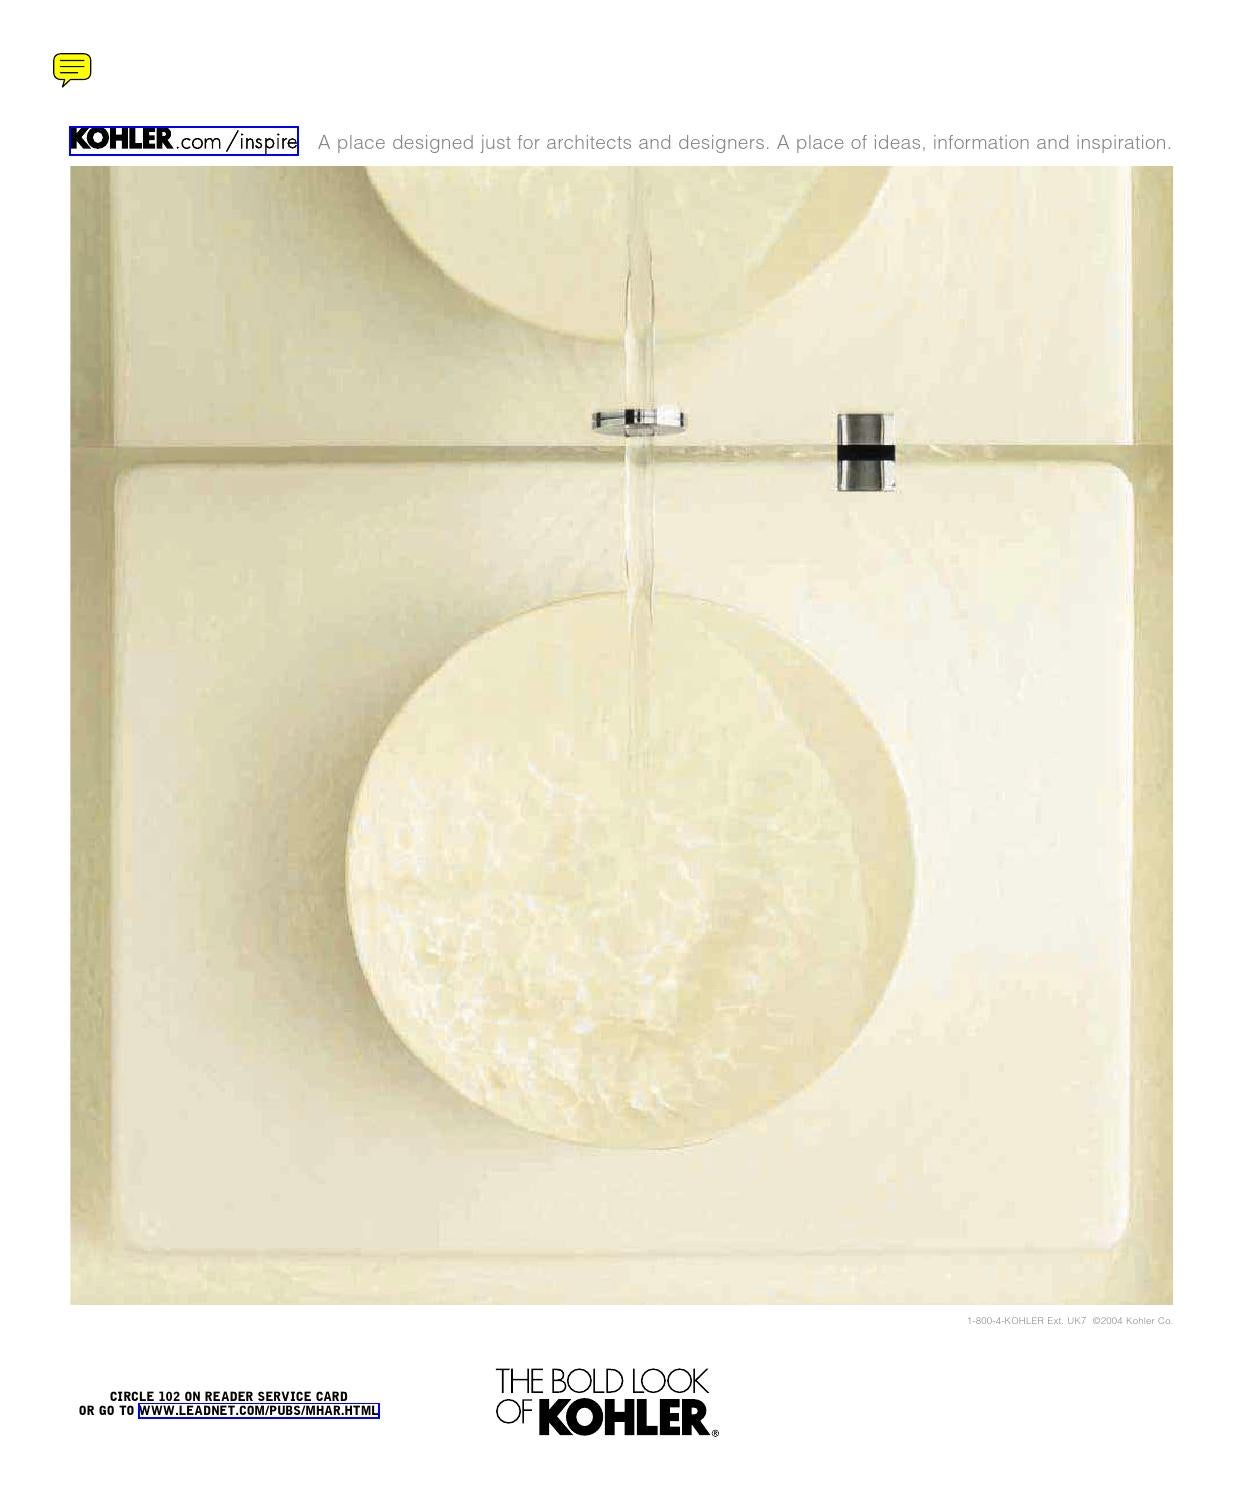 grande sconto design di qualità fabbrica 04 07 architectural record jul04 by HUSSIEN MANSOUR - issuu